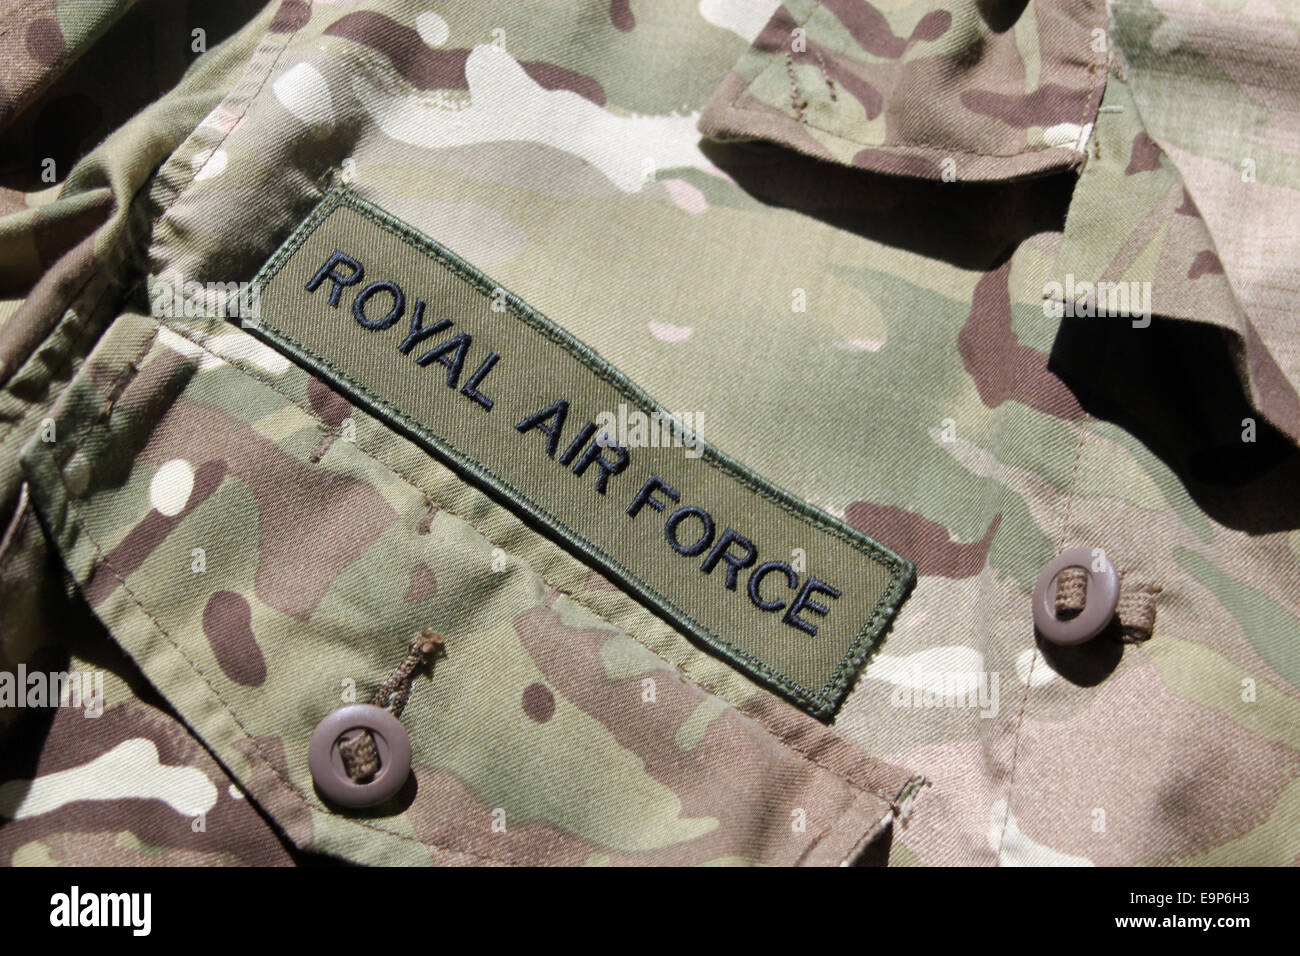 Close-up of RAF military uniform - Stock Image